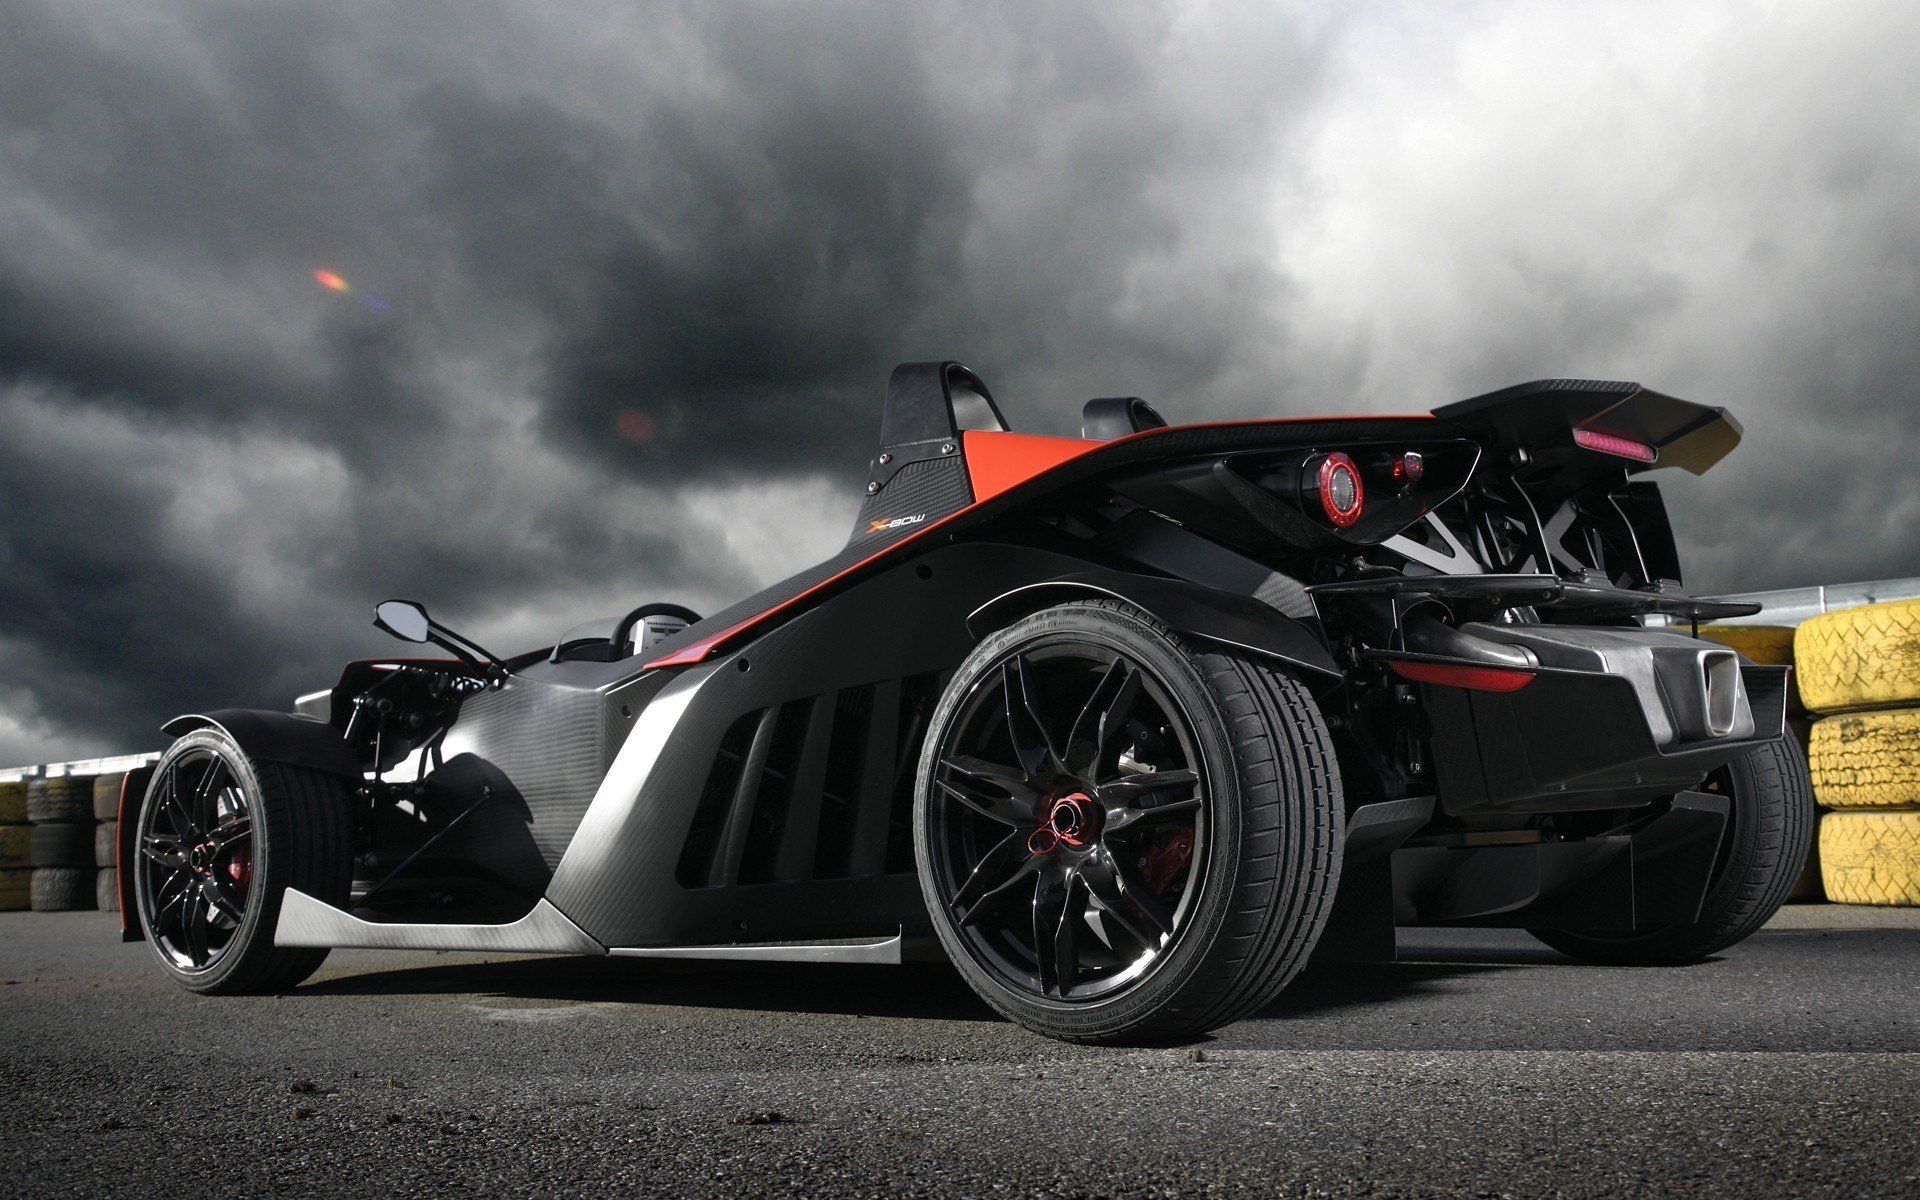 Latest 49 Speedy Car Wallpapers For Free Desktop Download Free Download